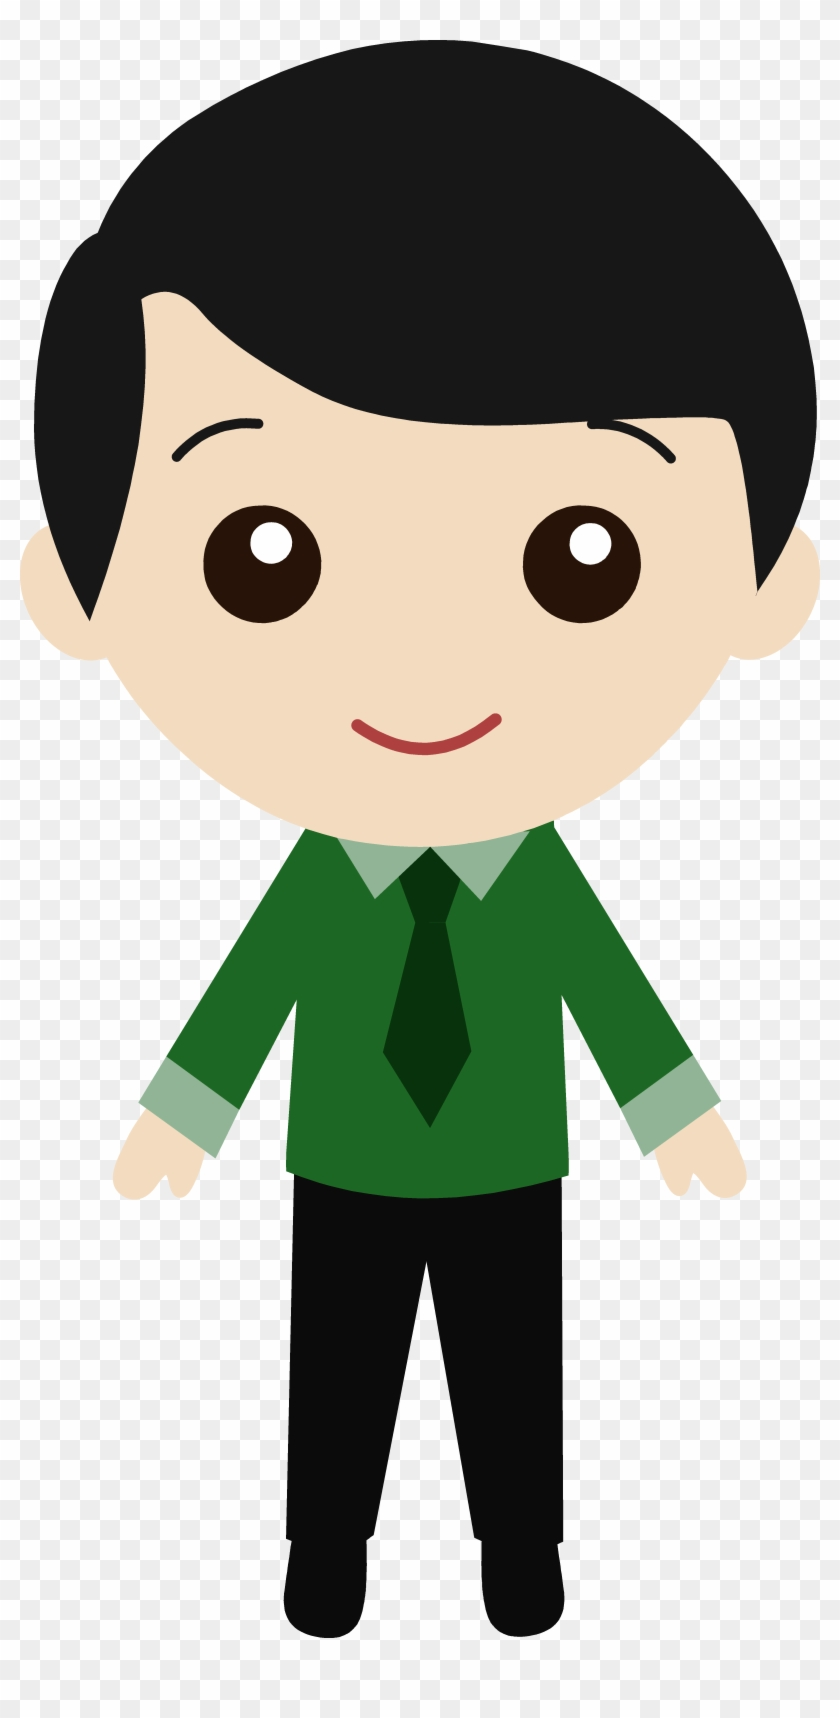 Asians Clipart Cute Cartoon Boy With Black Hair Free Transparent Png Clipart Images Download